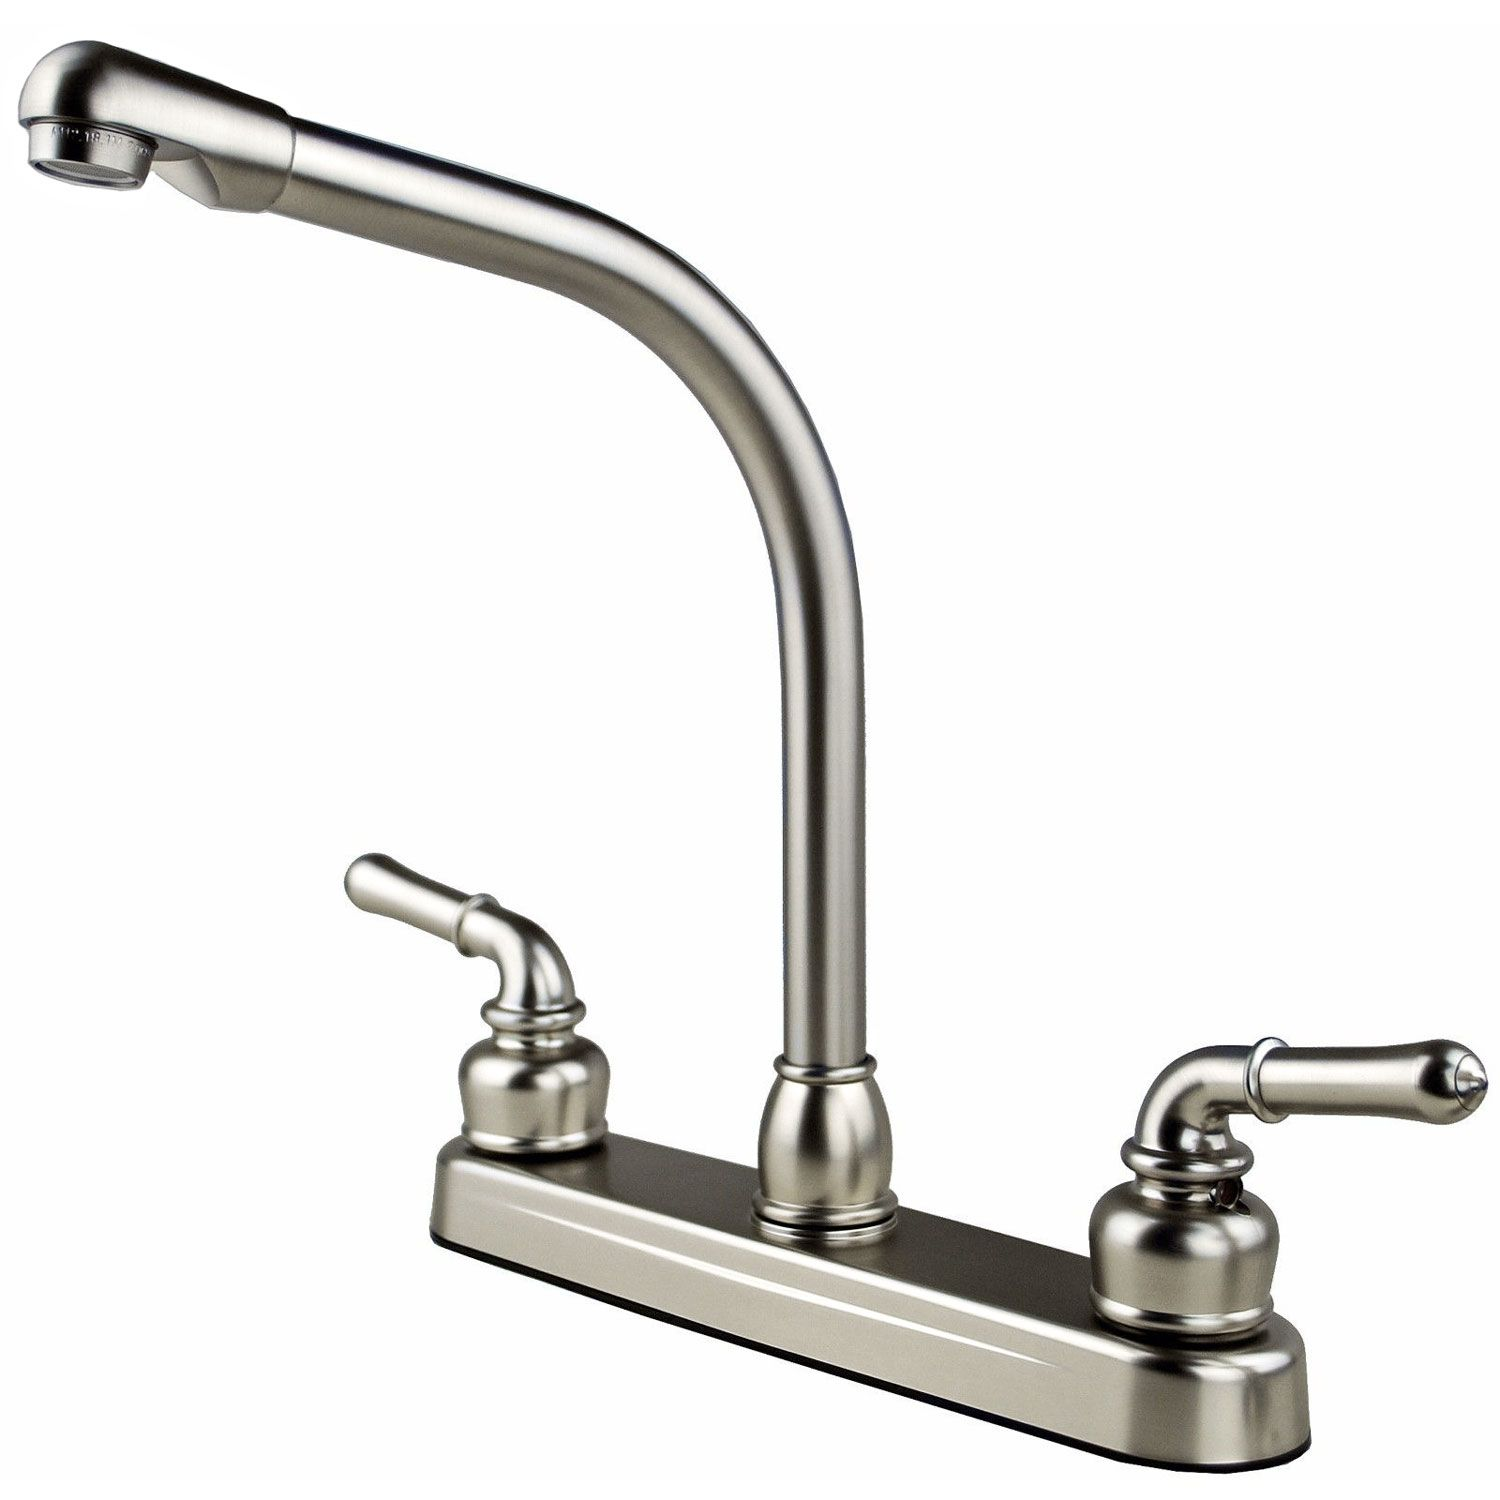 Ultra Faucets Rv Mobile Home Trailer Kitchen Sink Faucet